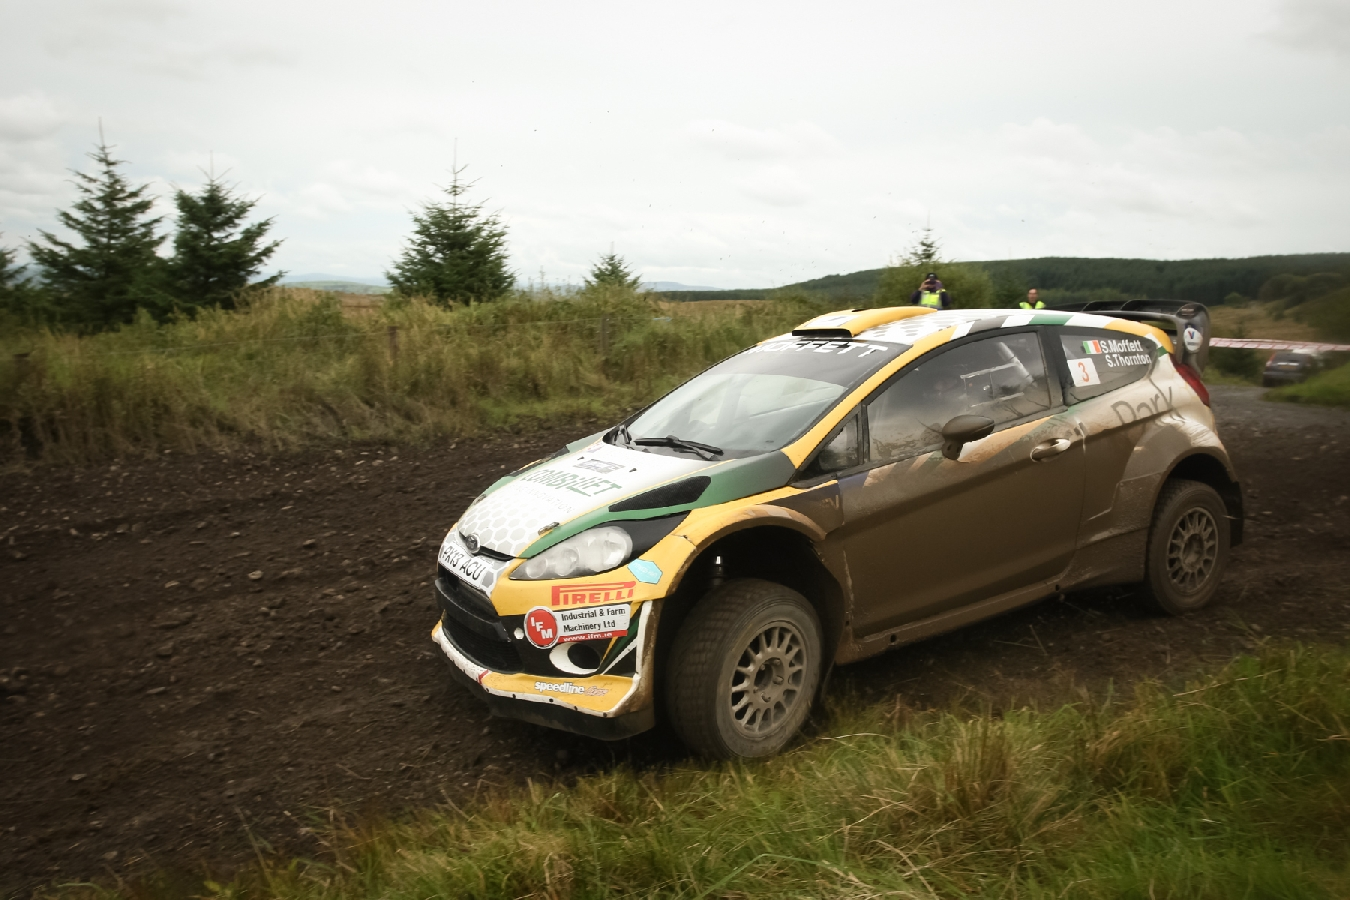 Sam Seals It on Bushwhacker Rally! 2017 Valvoline Motorsport Ireland National Forest Rally Championship-Round Six Report